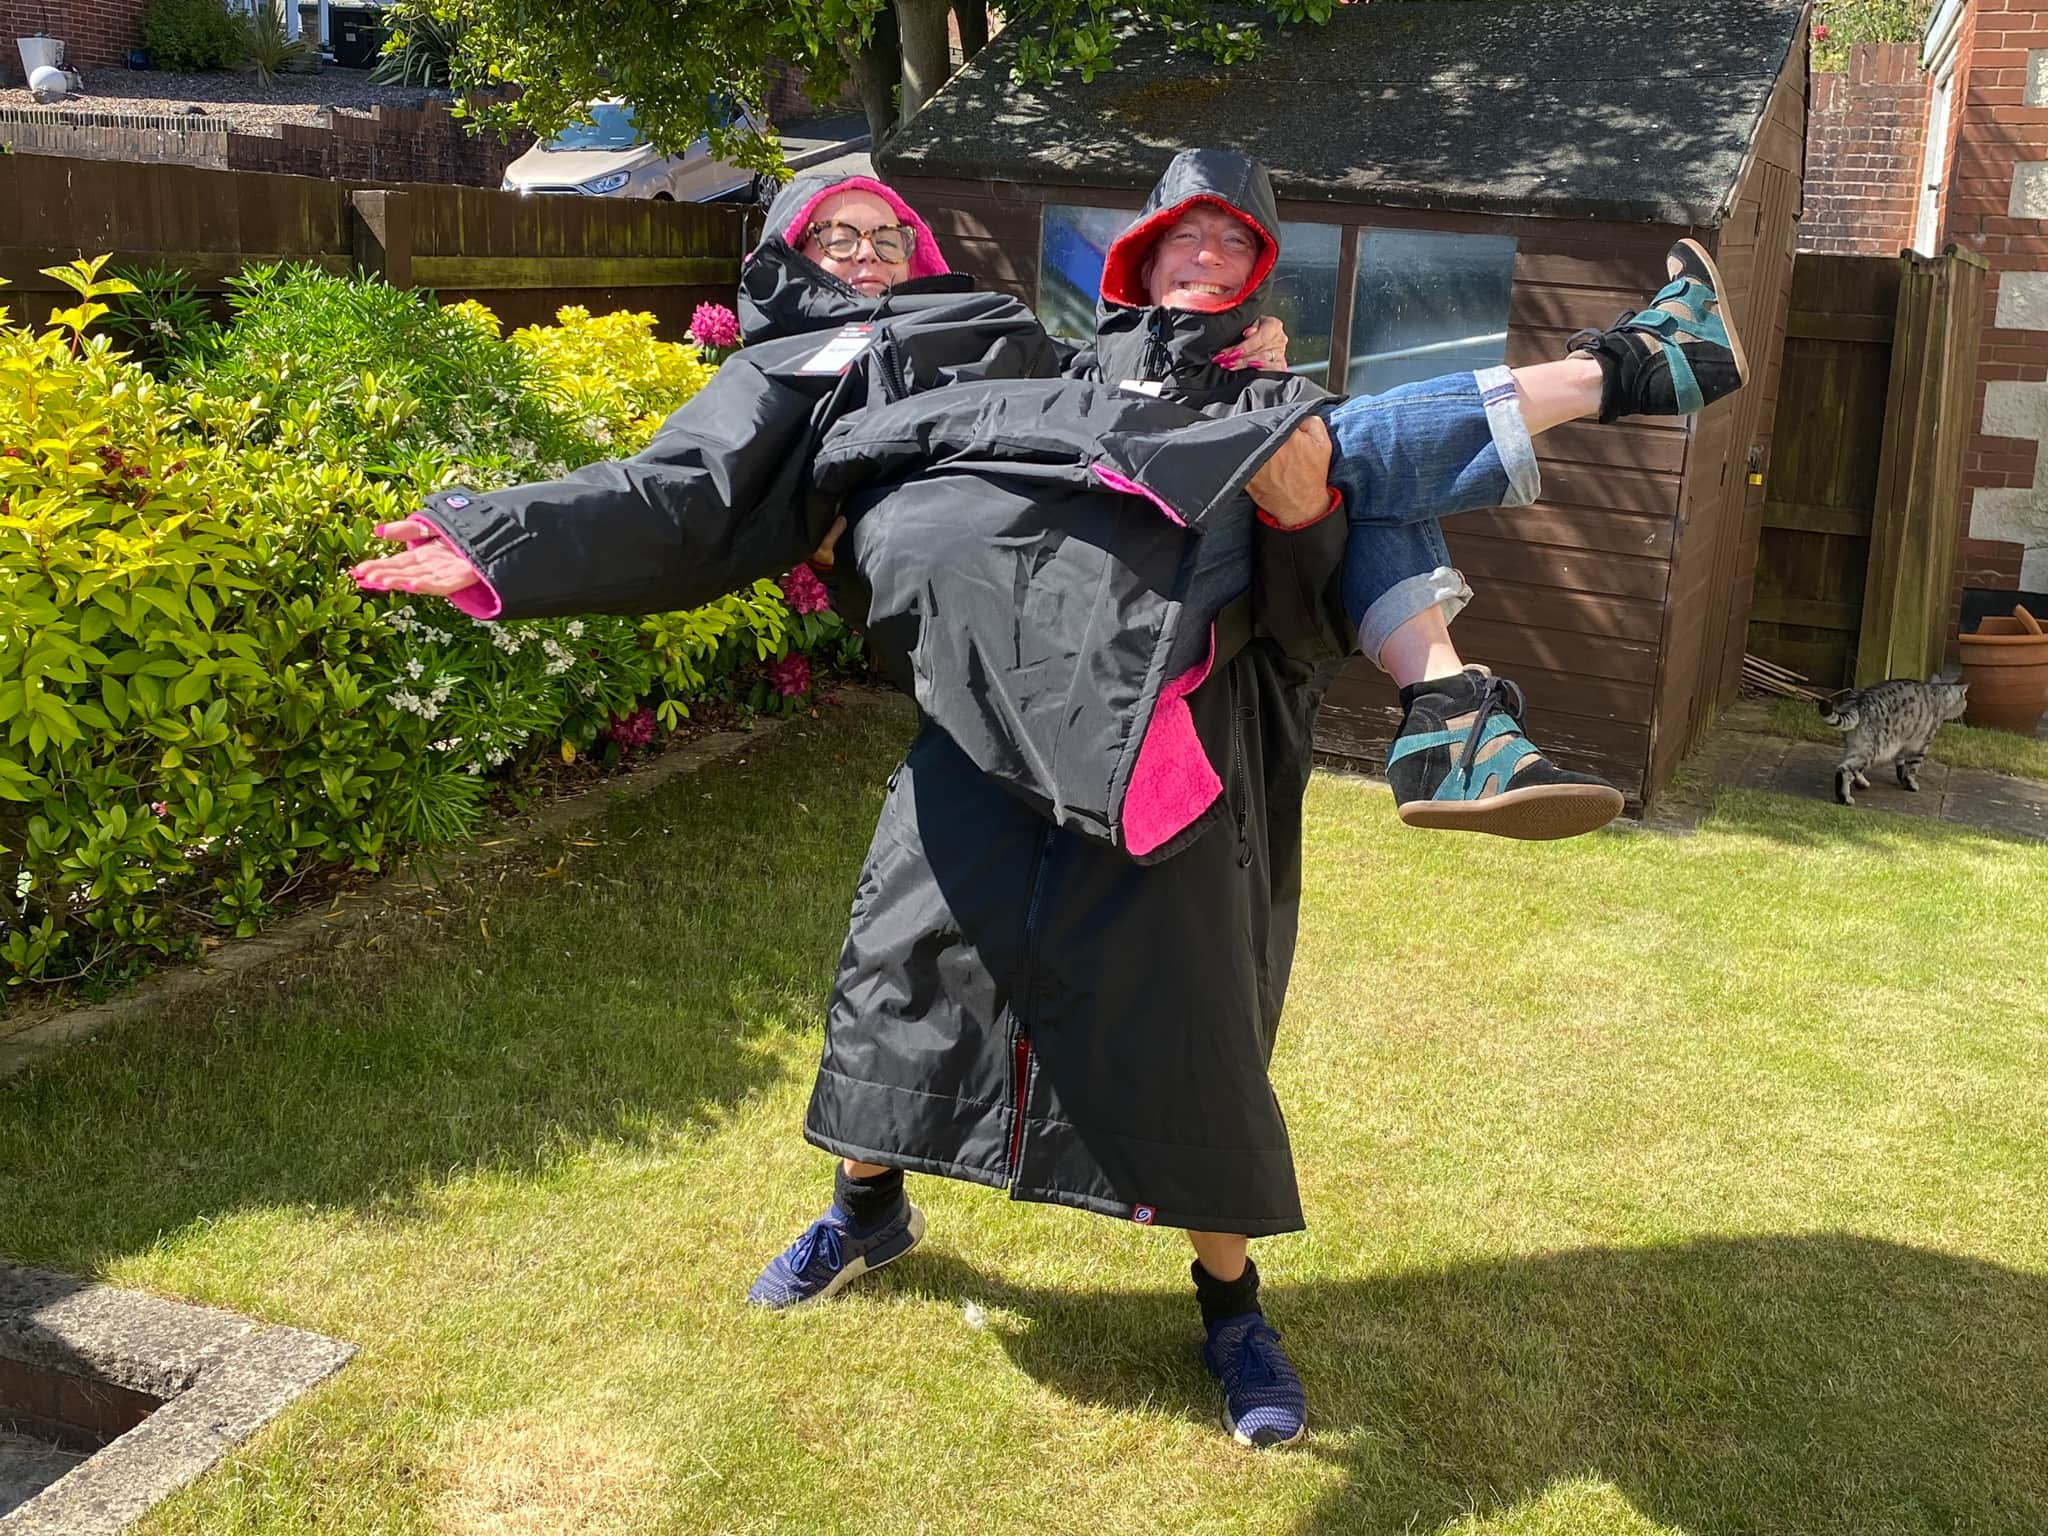 Winner Emma Beckley of a Double dryrobe Advance Long Sleeve and Bags - Blue - 2x Dryrobe longsleeves with 2x Bags - 14th June